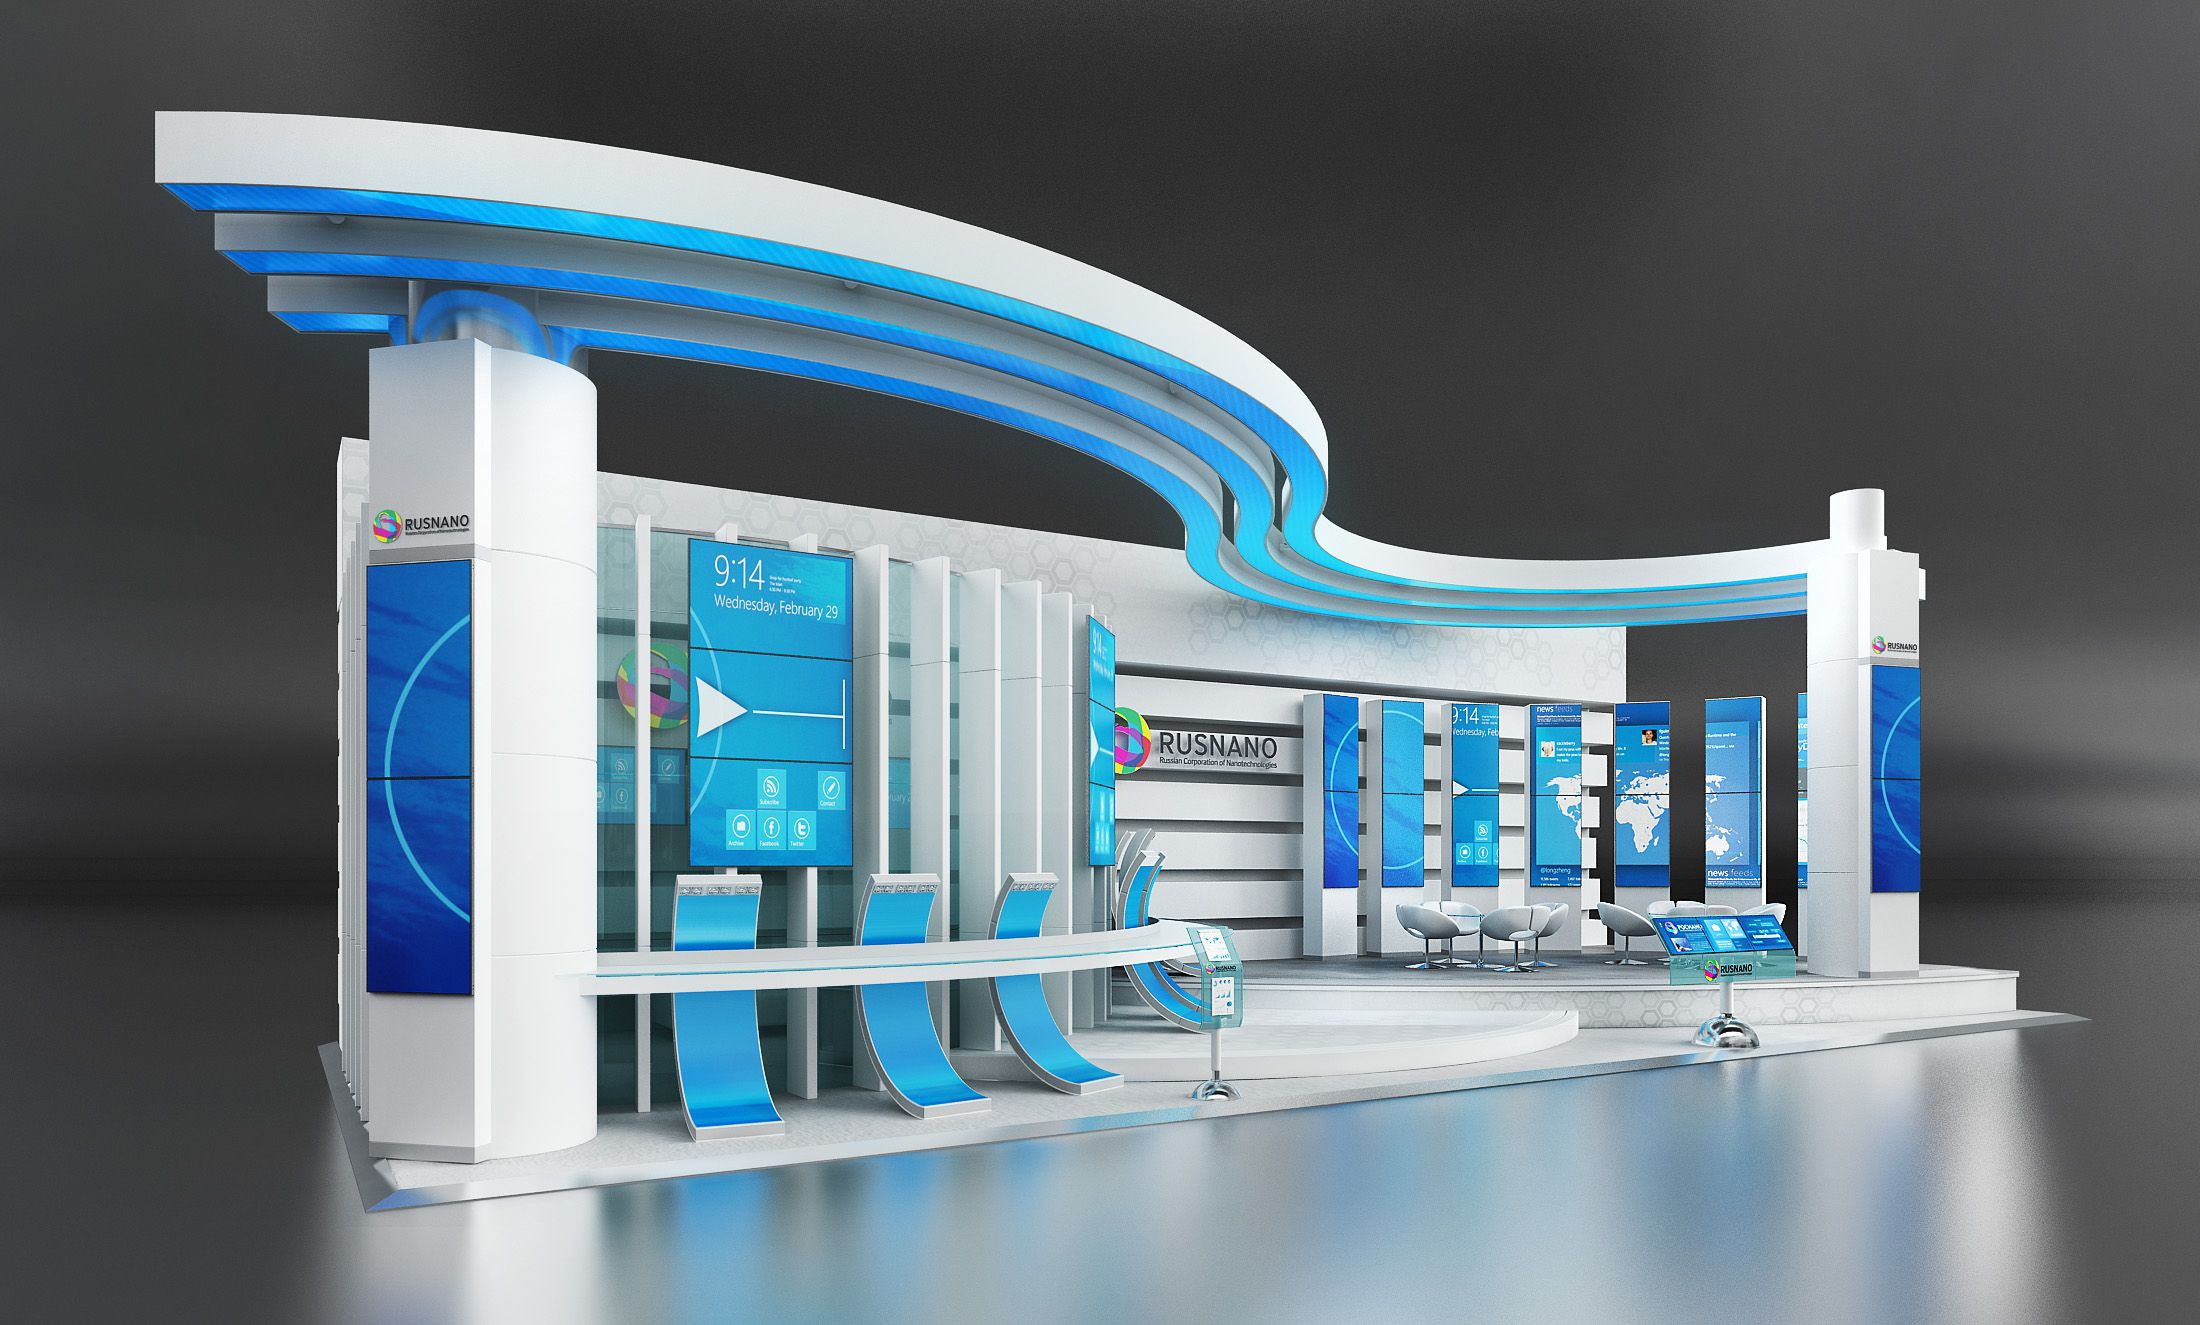 Exhibition Stand Design Guidelines : One of the design concept for rusnano exhibition stand